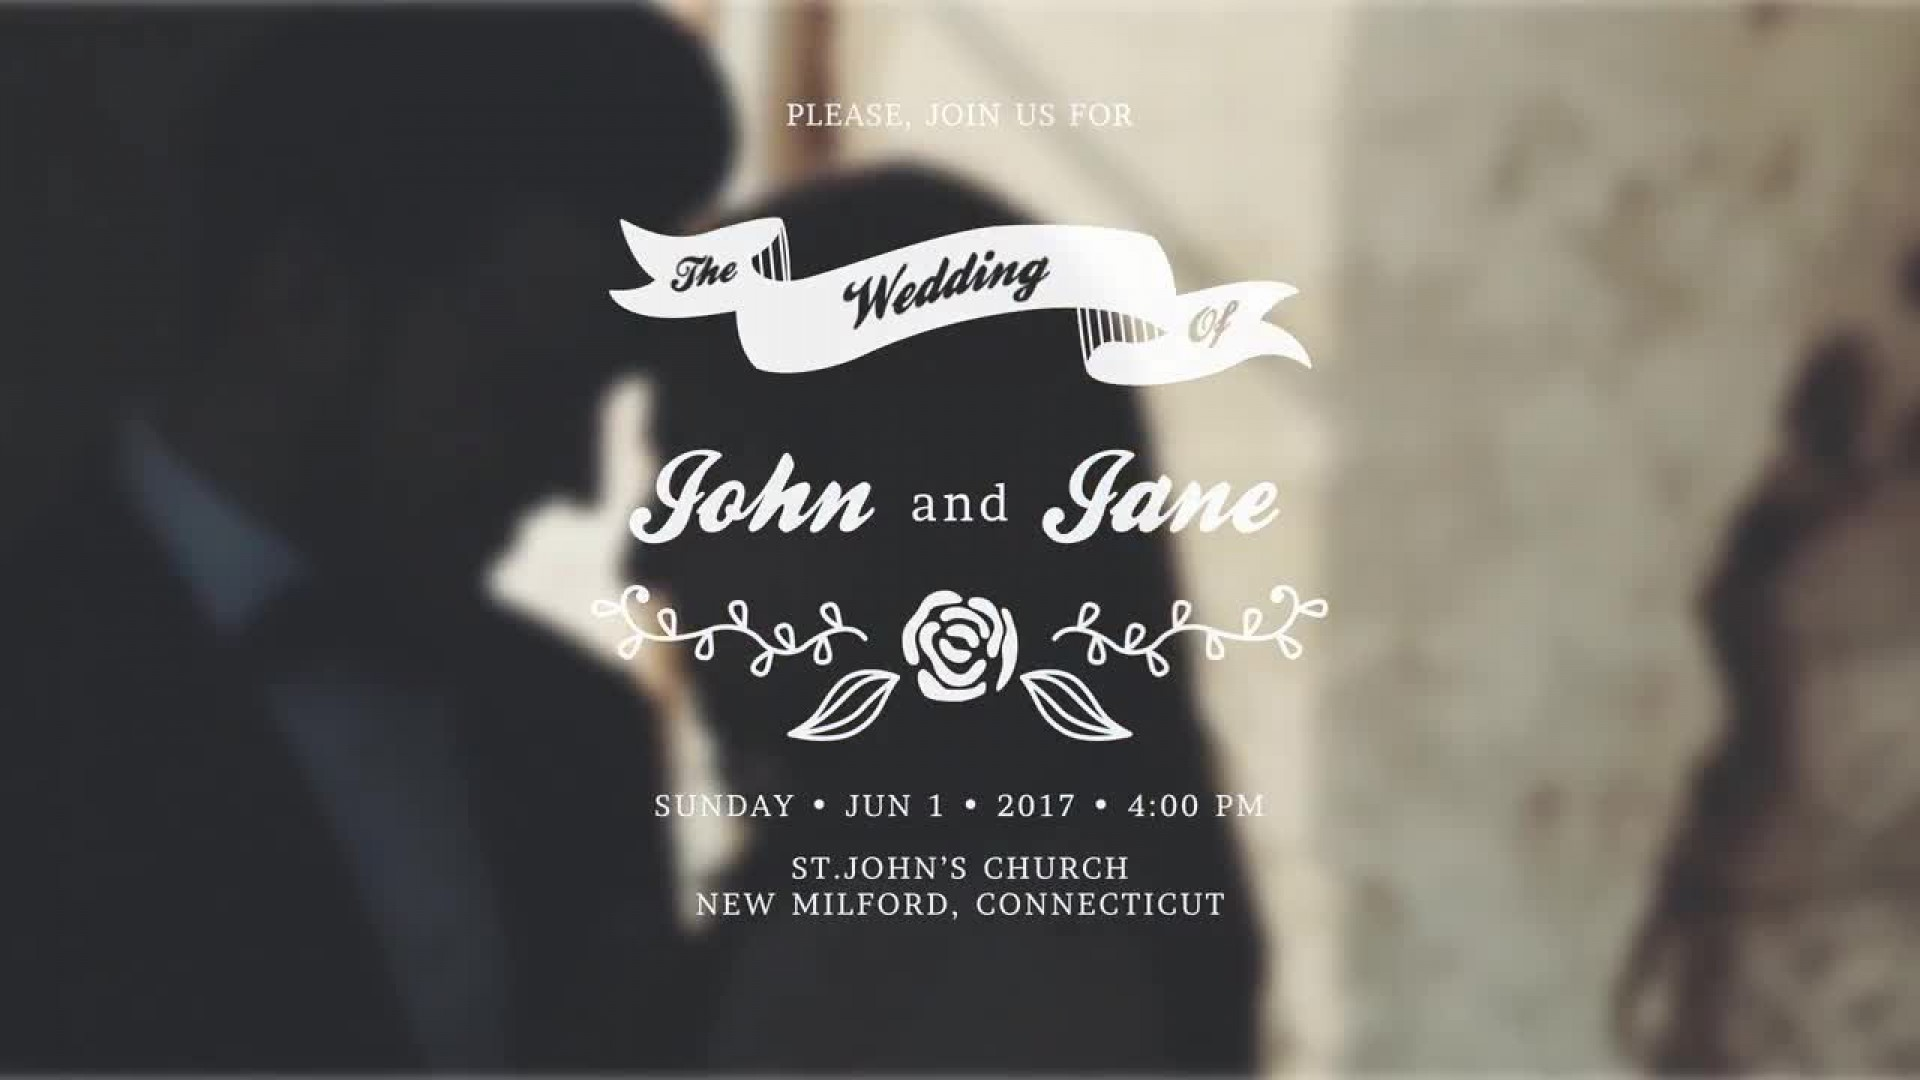 007 Dreaded After Effect Wedding Template Inspiration  Templates Free Download Cc Invitation1920